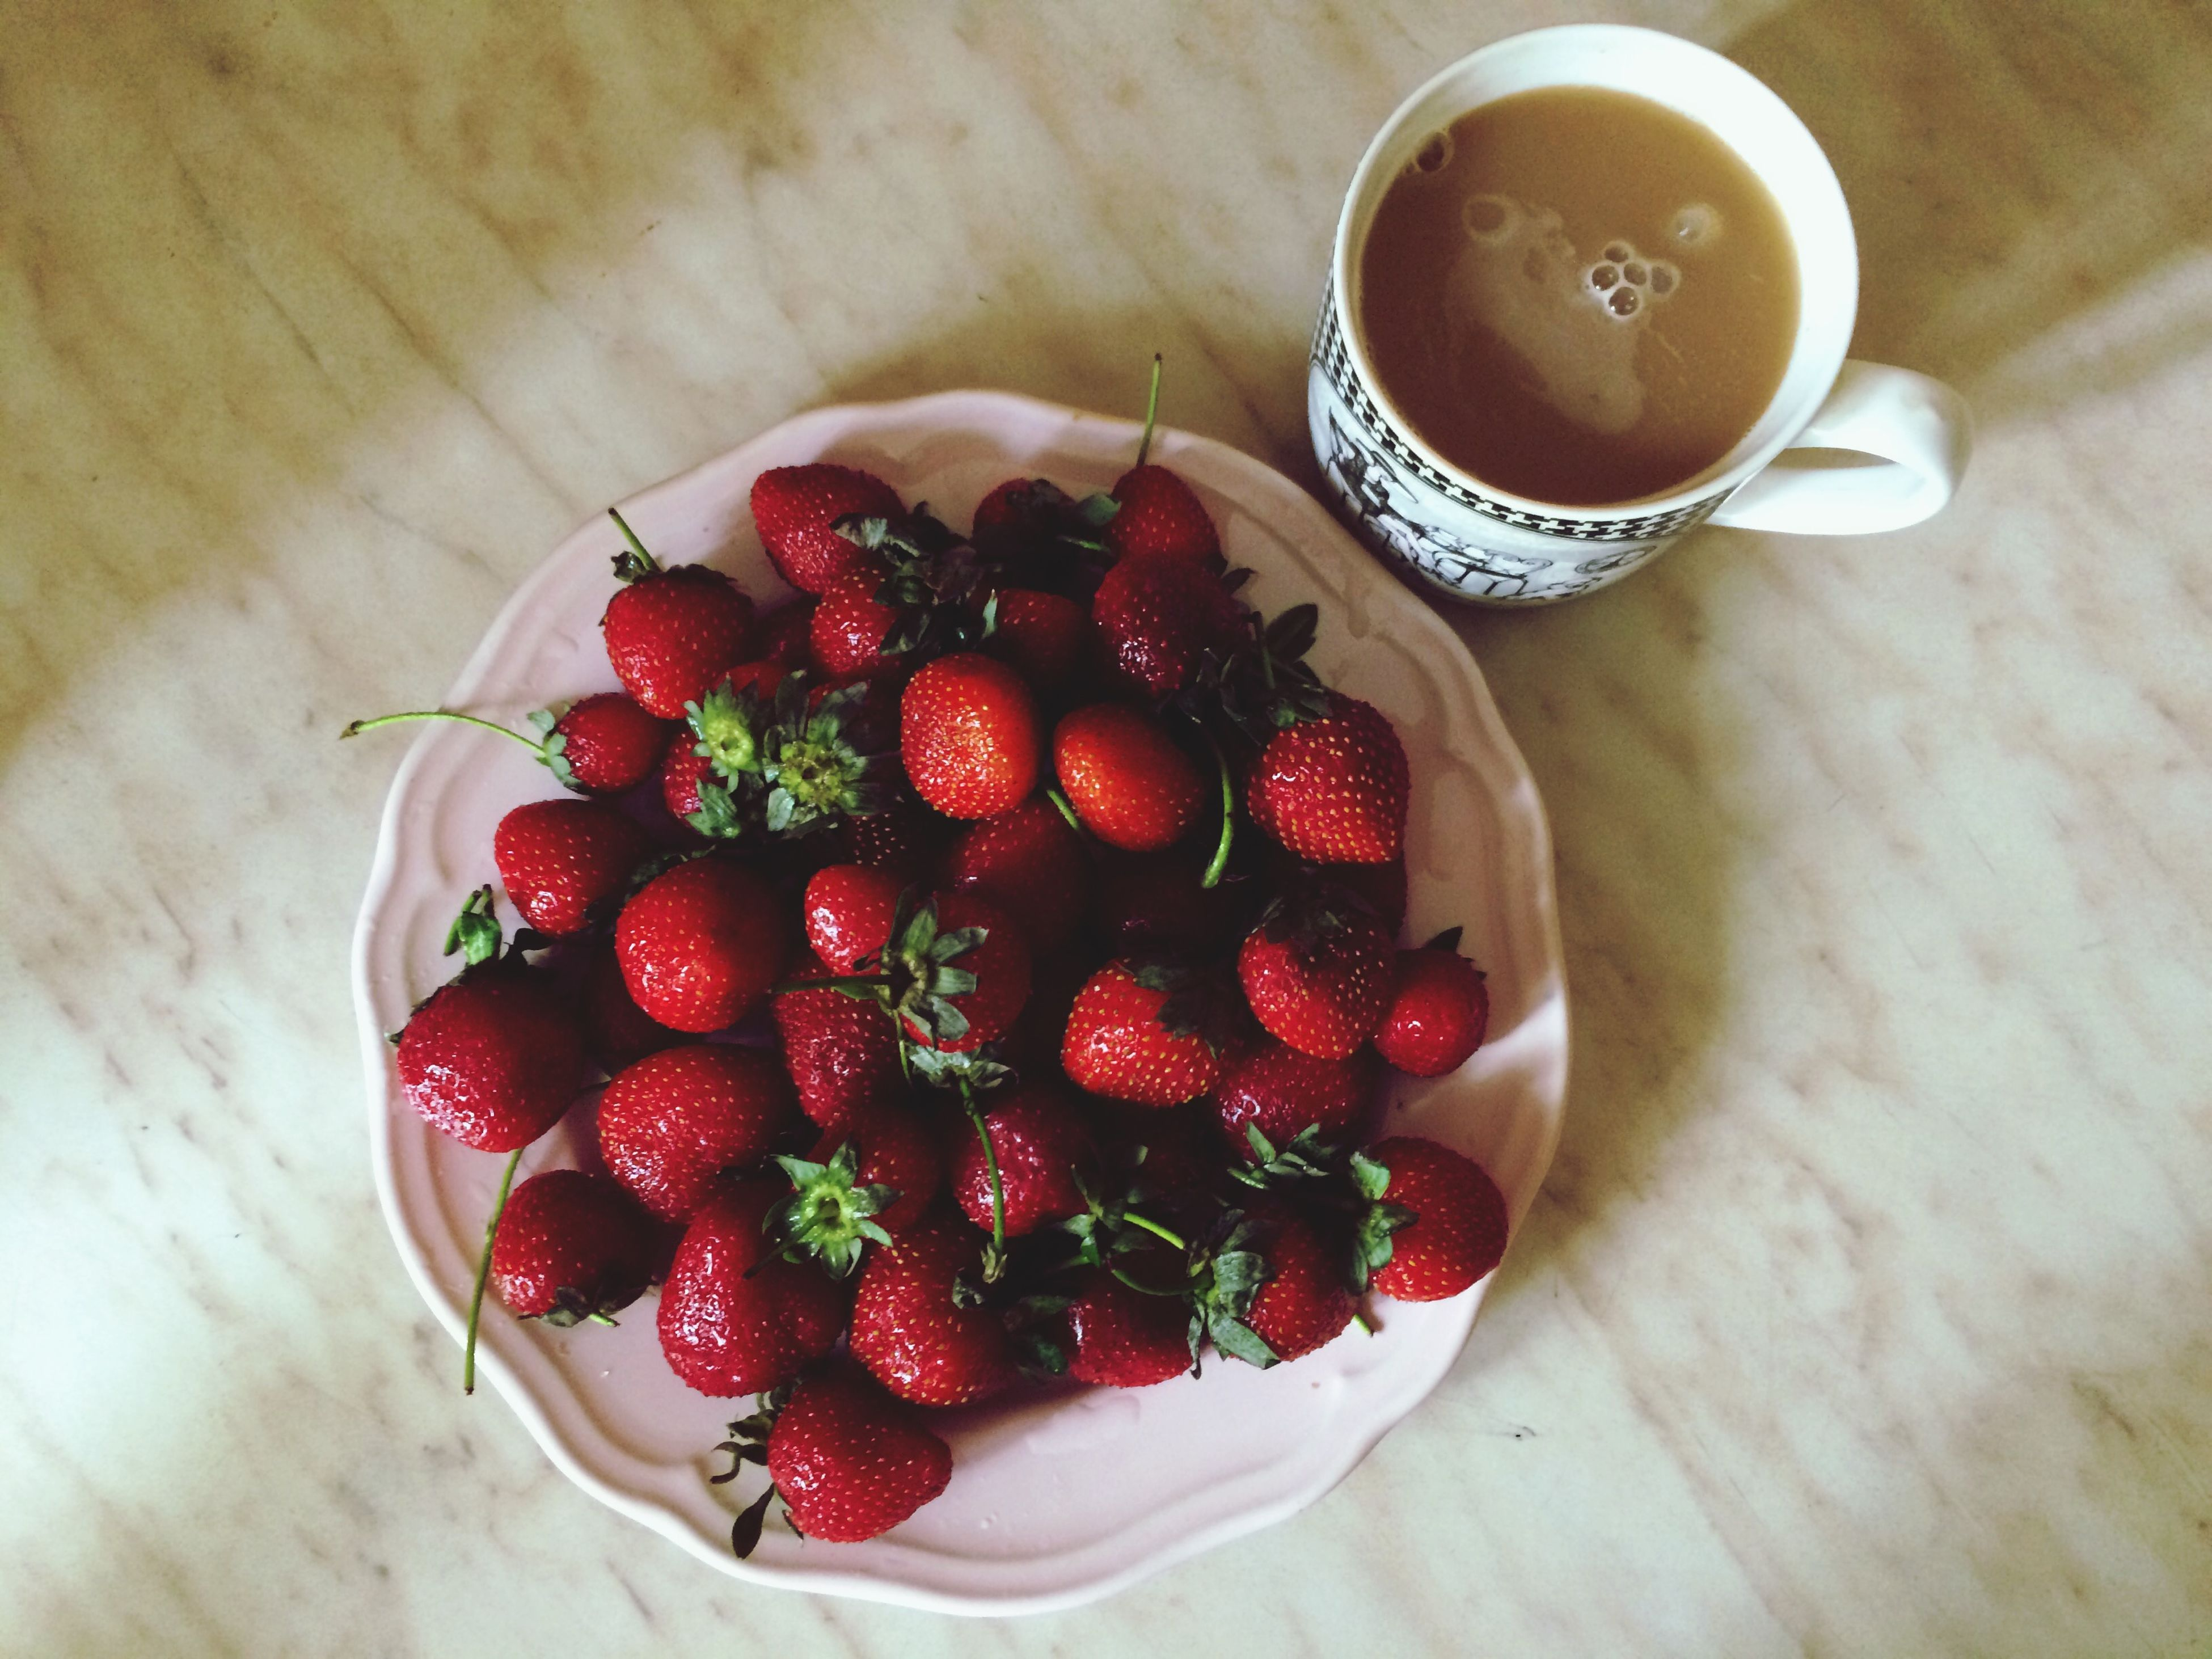 food and drink, freshness, food, fruit, healthy eating, indoors, table, still life, red, strawberry, high angle view, bowl, drink, raspberry, refreshment, ripe, berry fruit, cherry, directly above, close-up